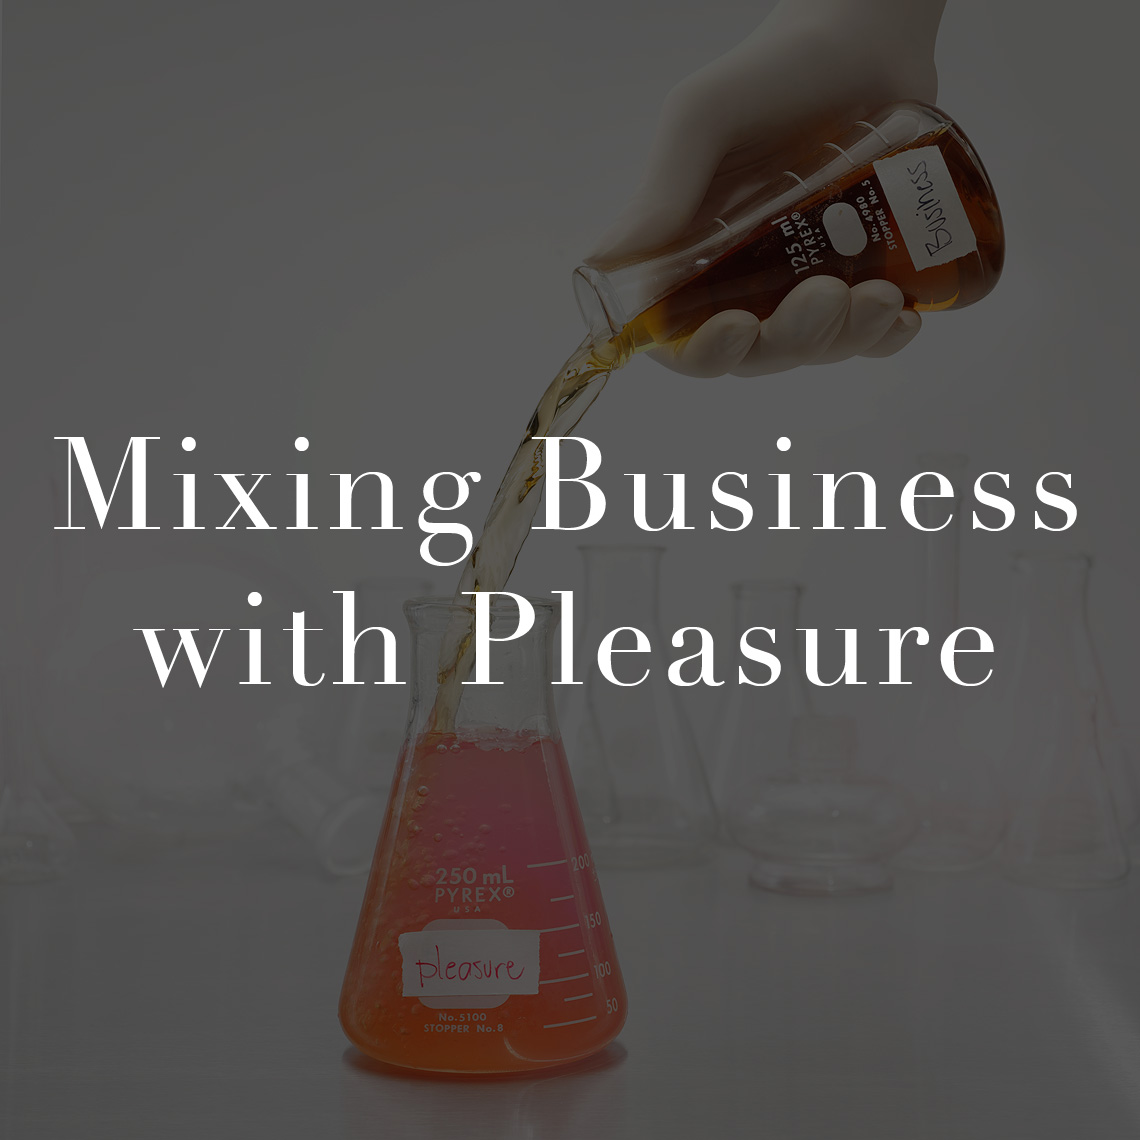 Mixing Business with Pleasure